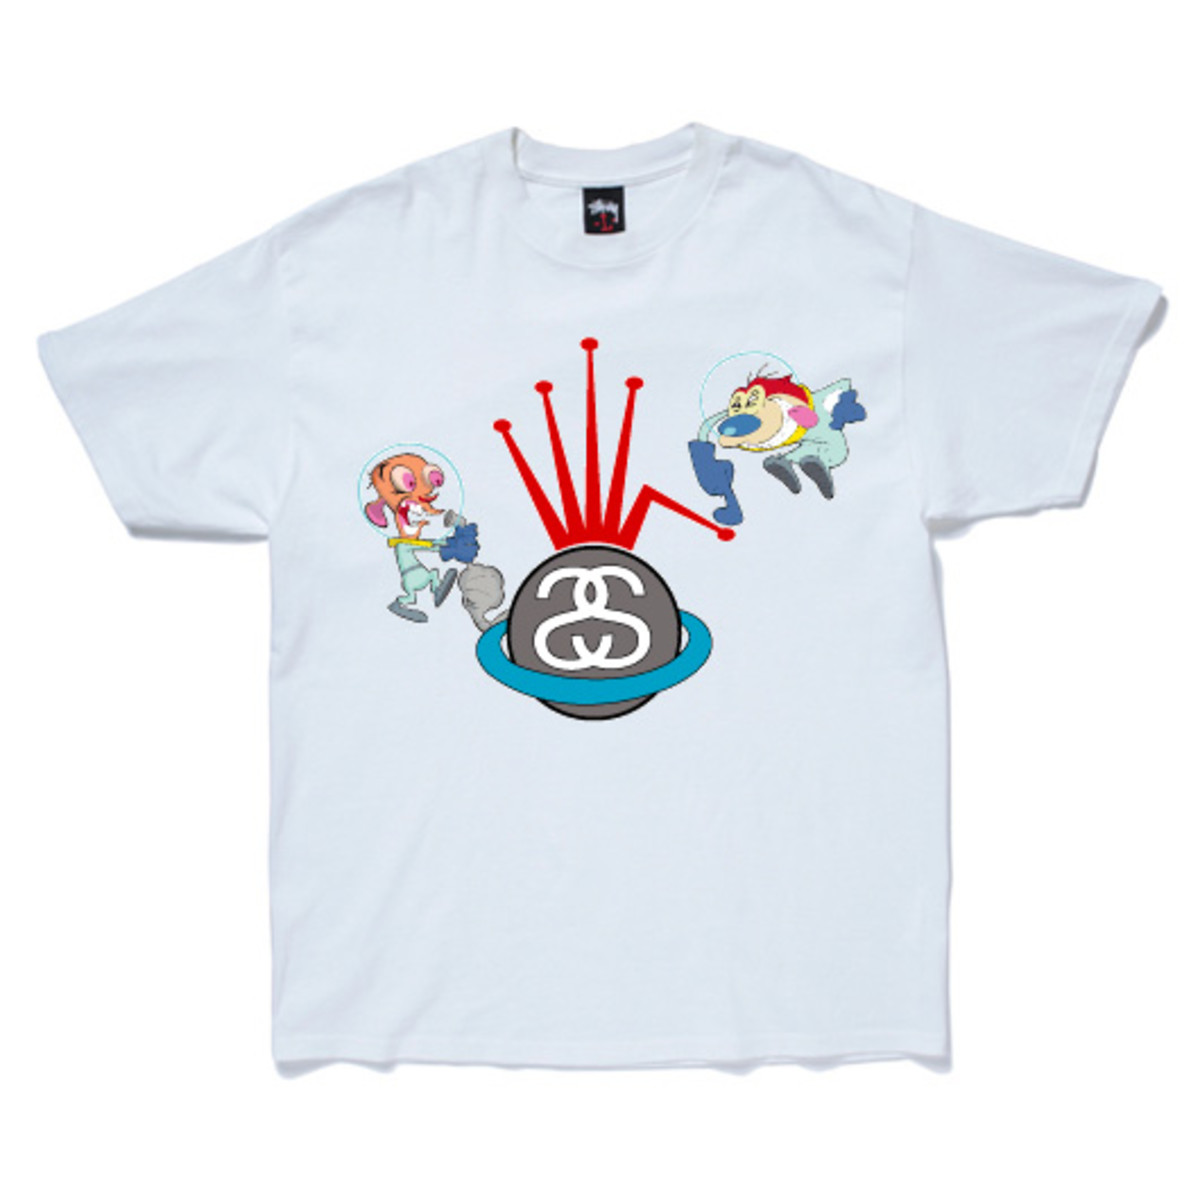 stussy-x-ren-and-stimpy-t-shirt-1